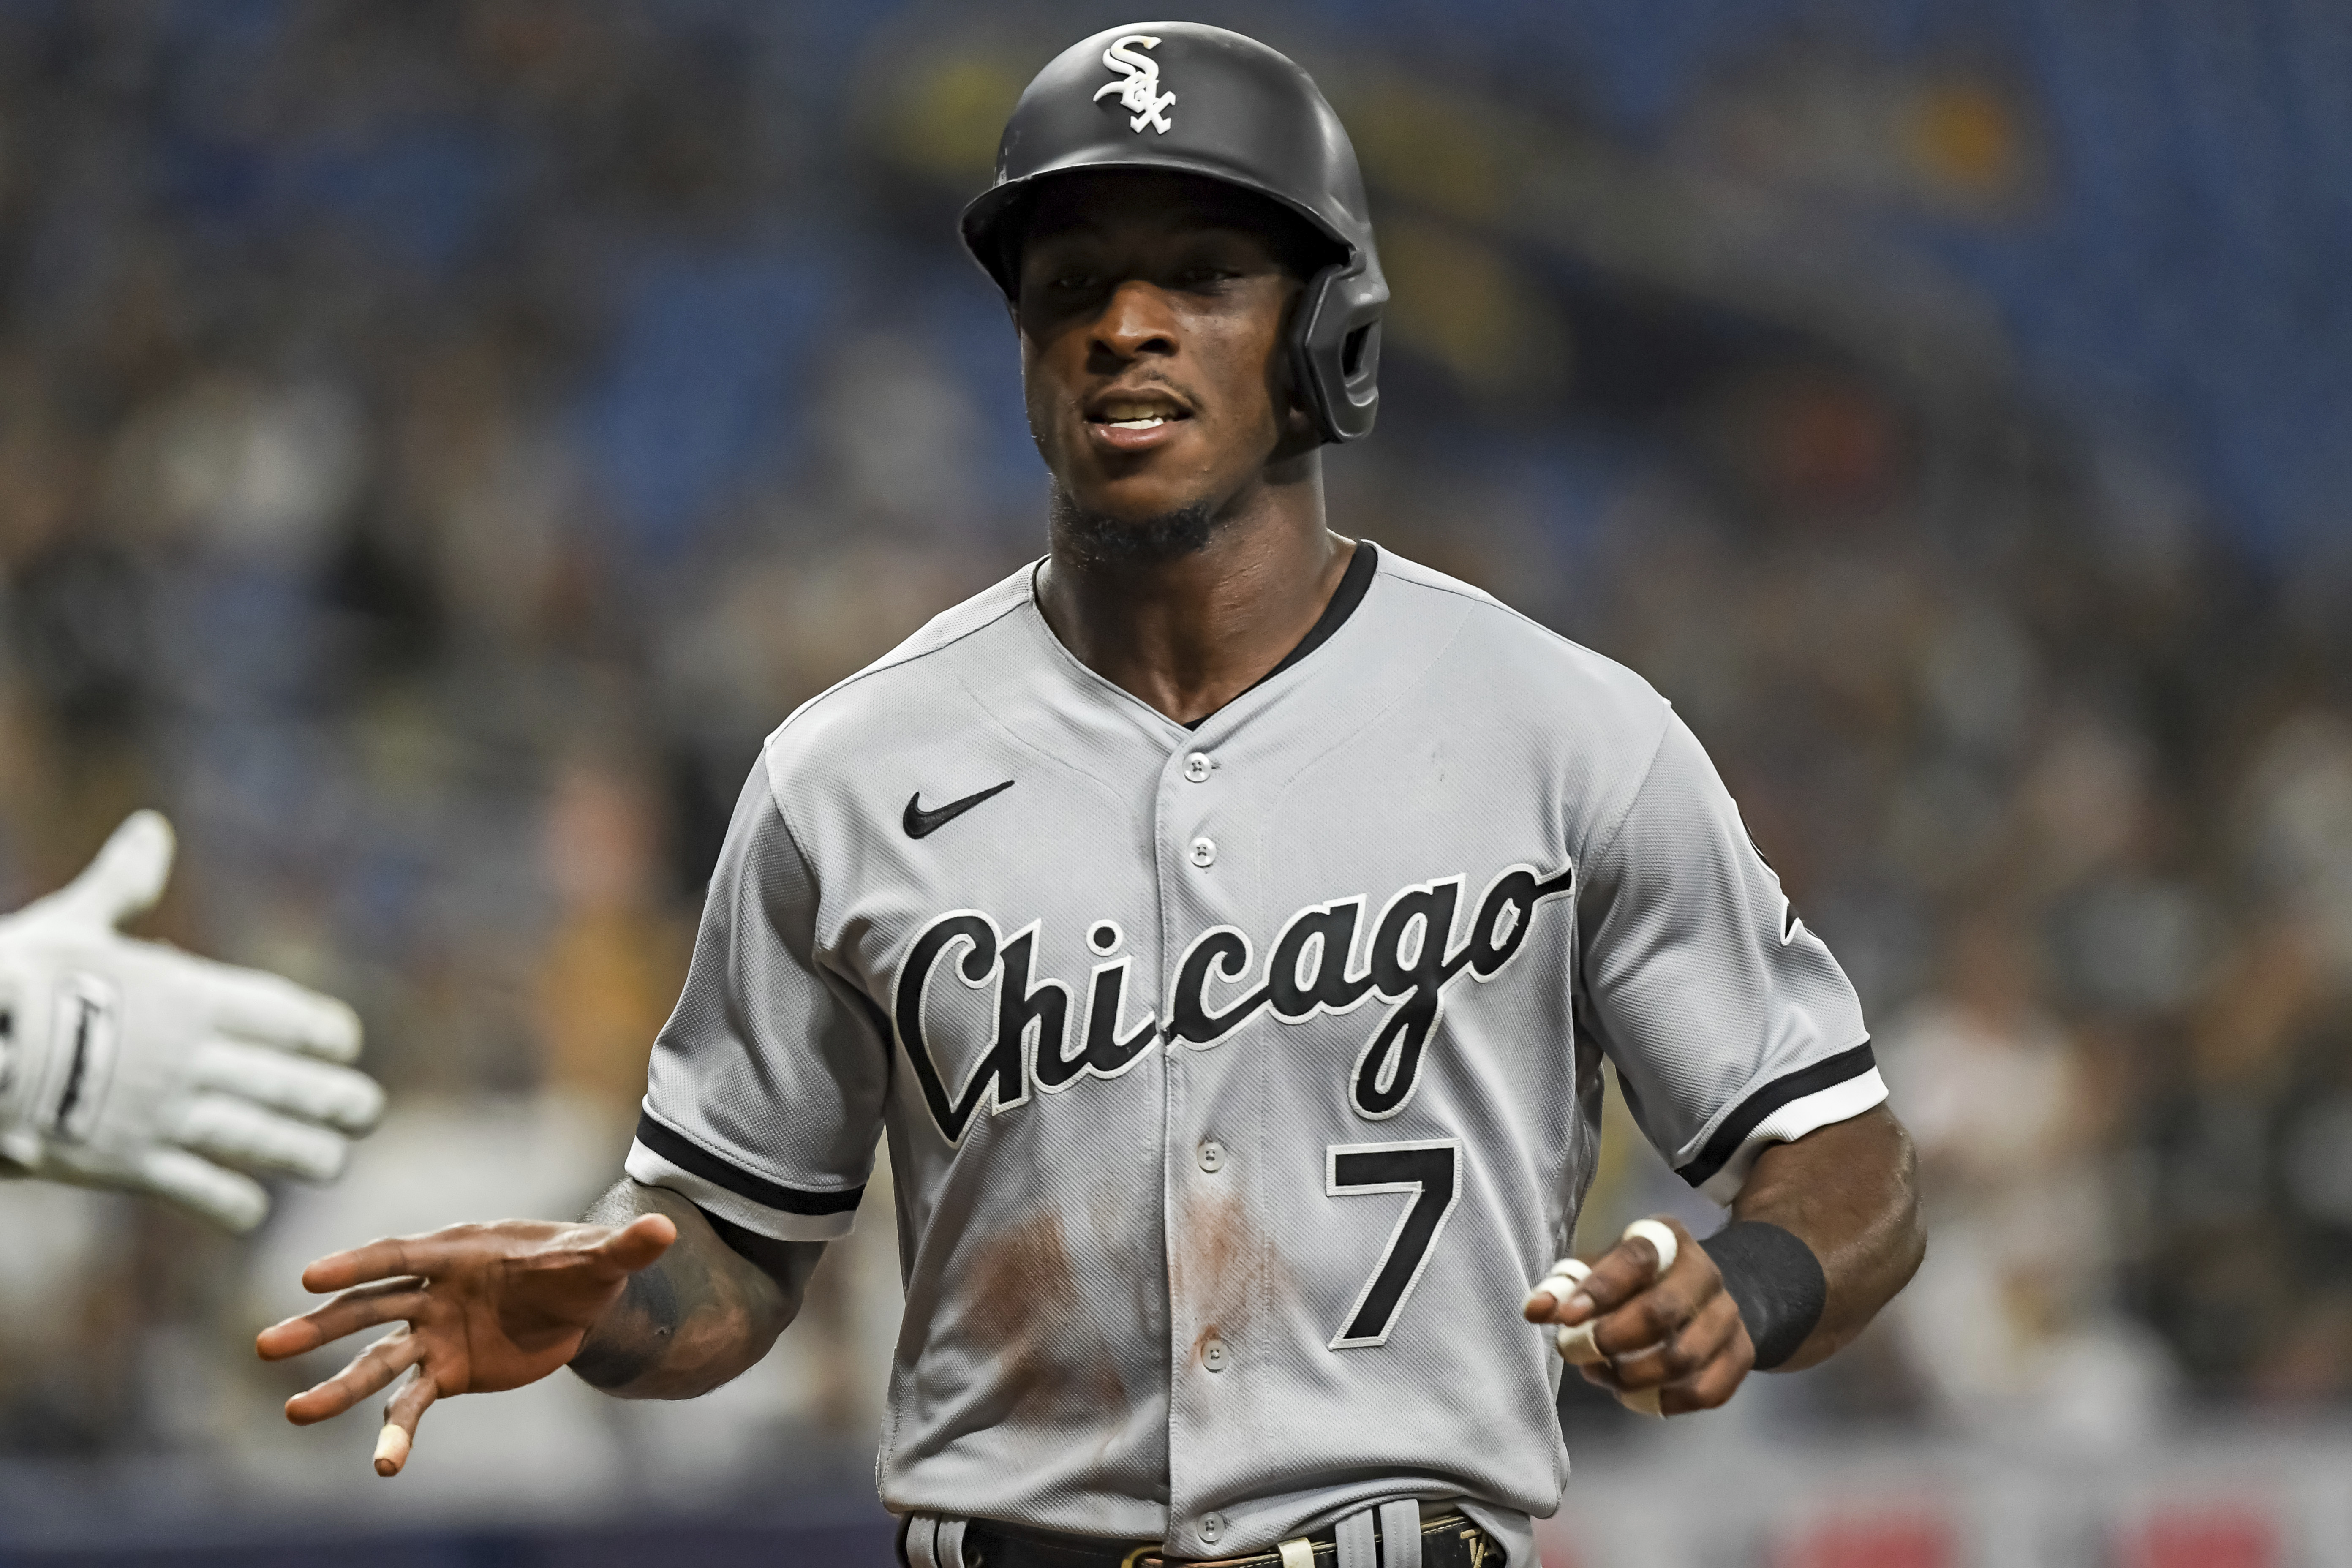 The White Sox placed shortstop Tim Anderson on the 10-day injured list.